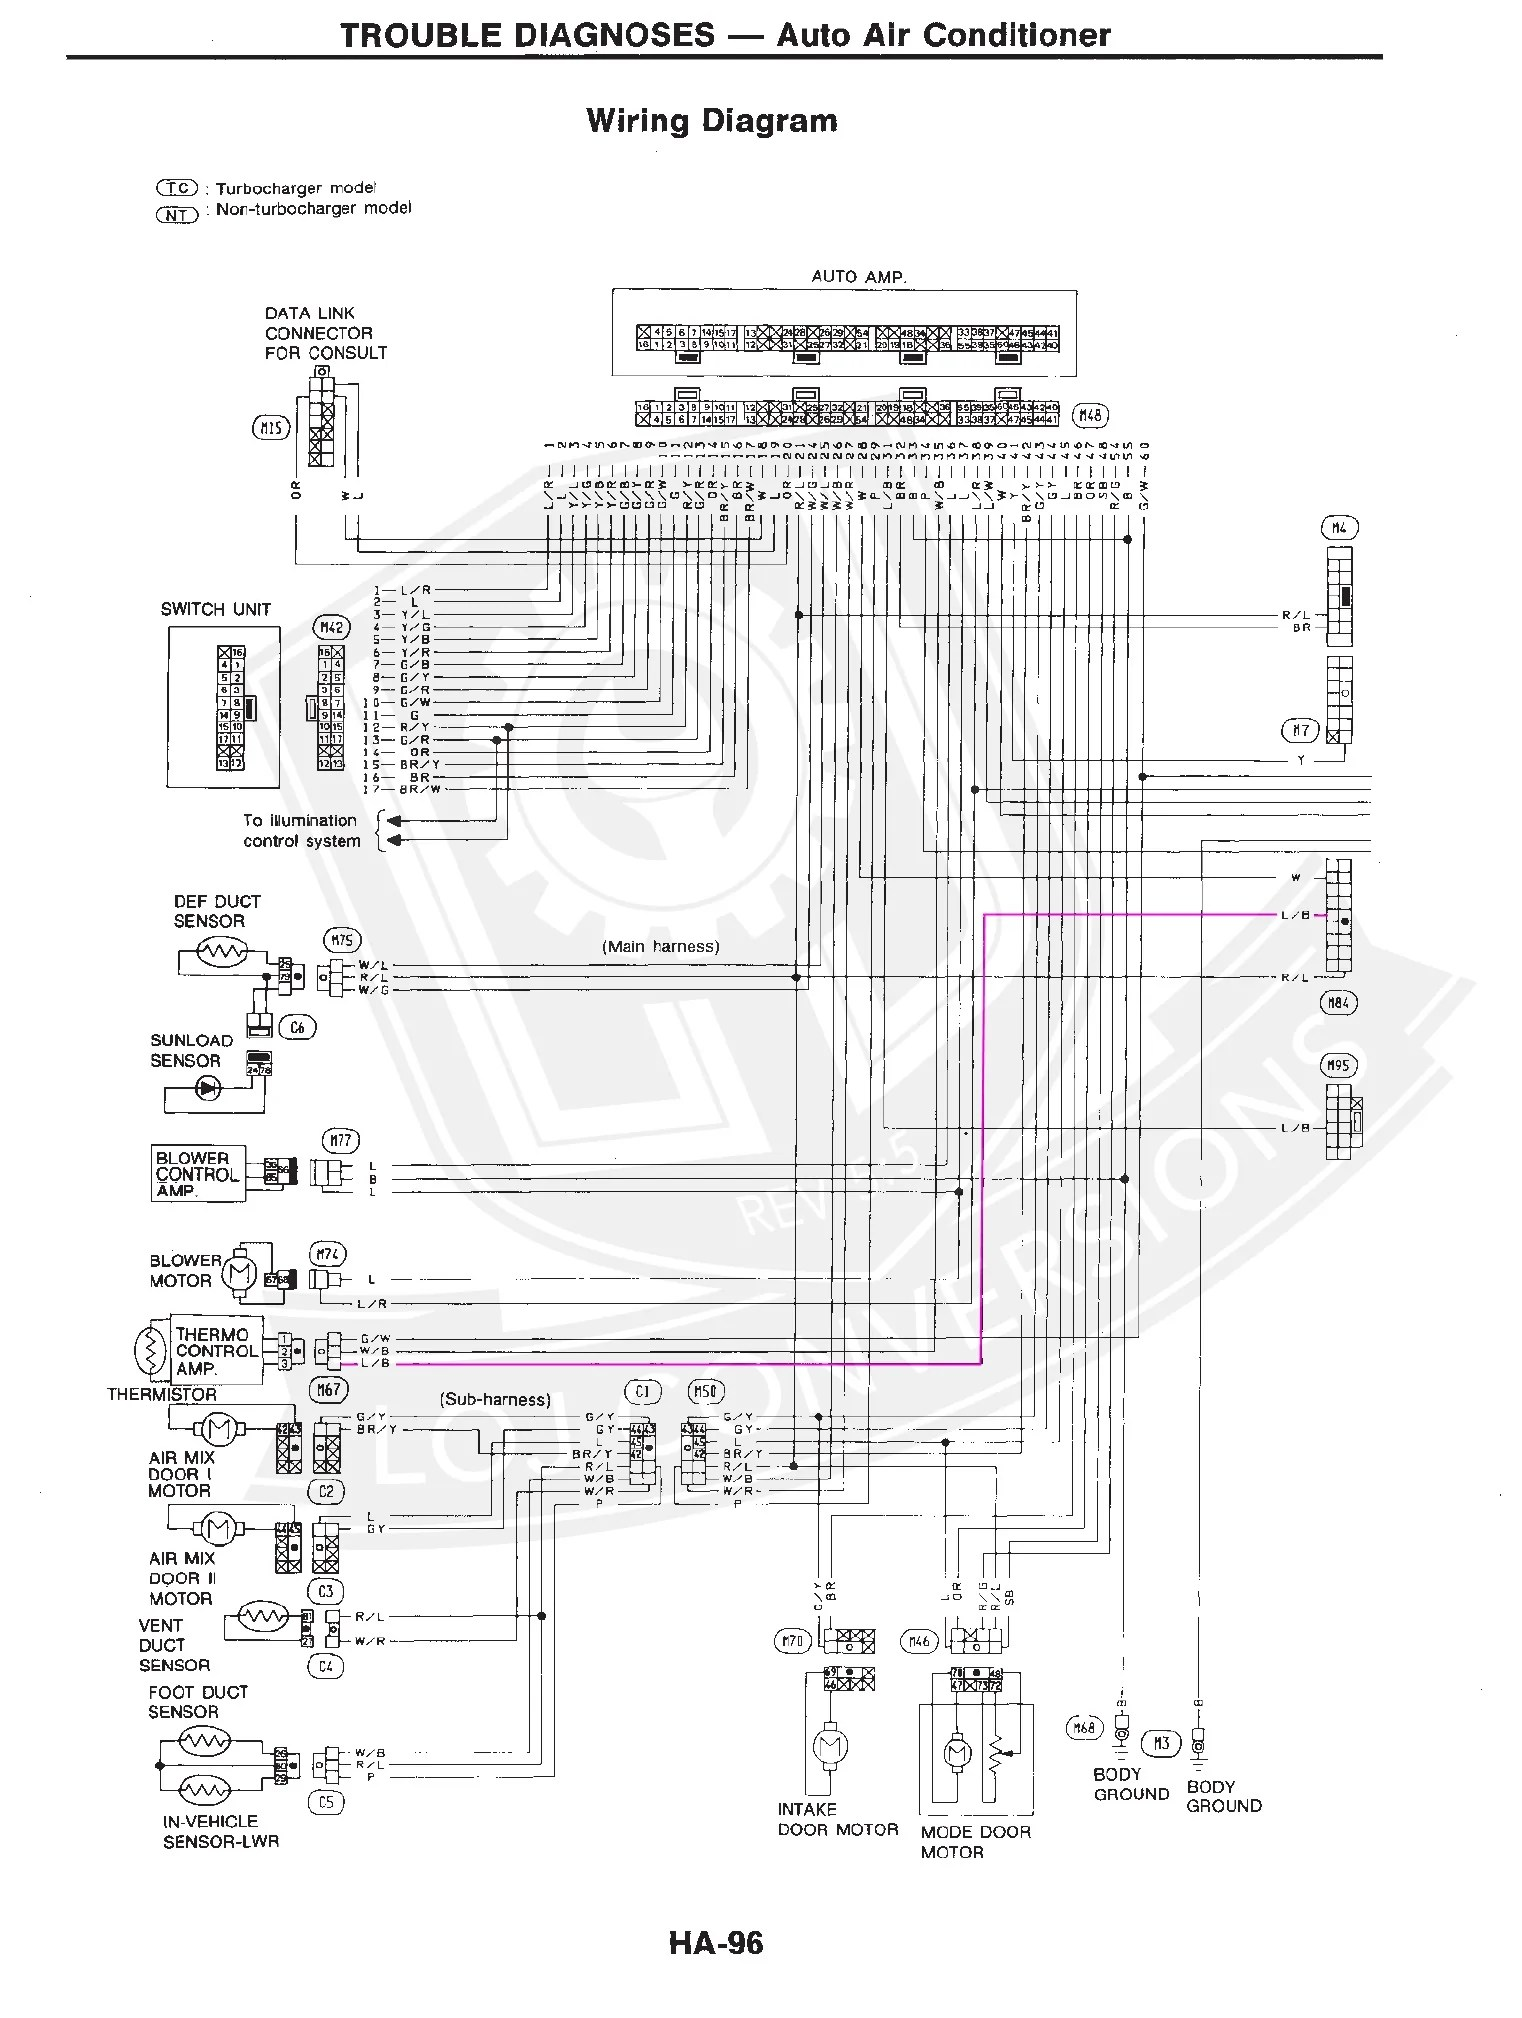 300zx ecu wiring harness diy wiring diagram blog 300zx ecu wiring harness diy [ 1522 x 2018 Pixel ]